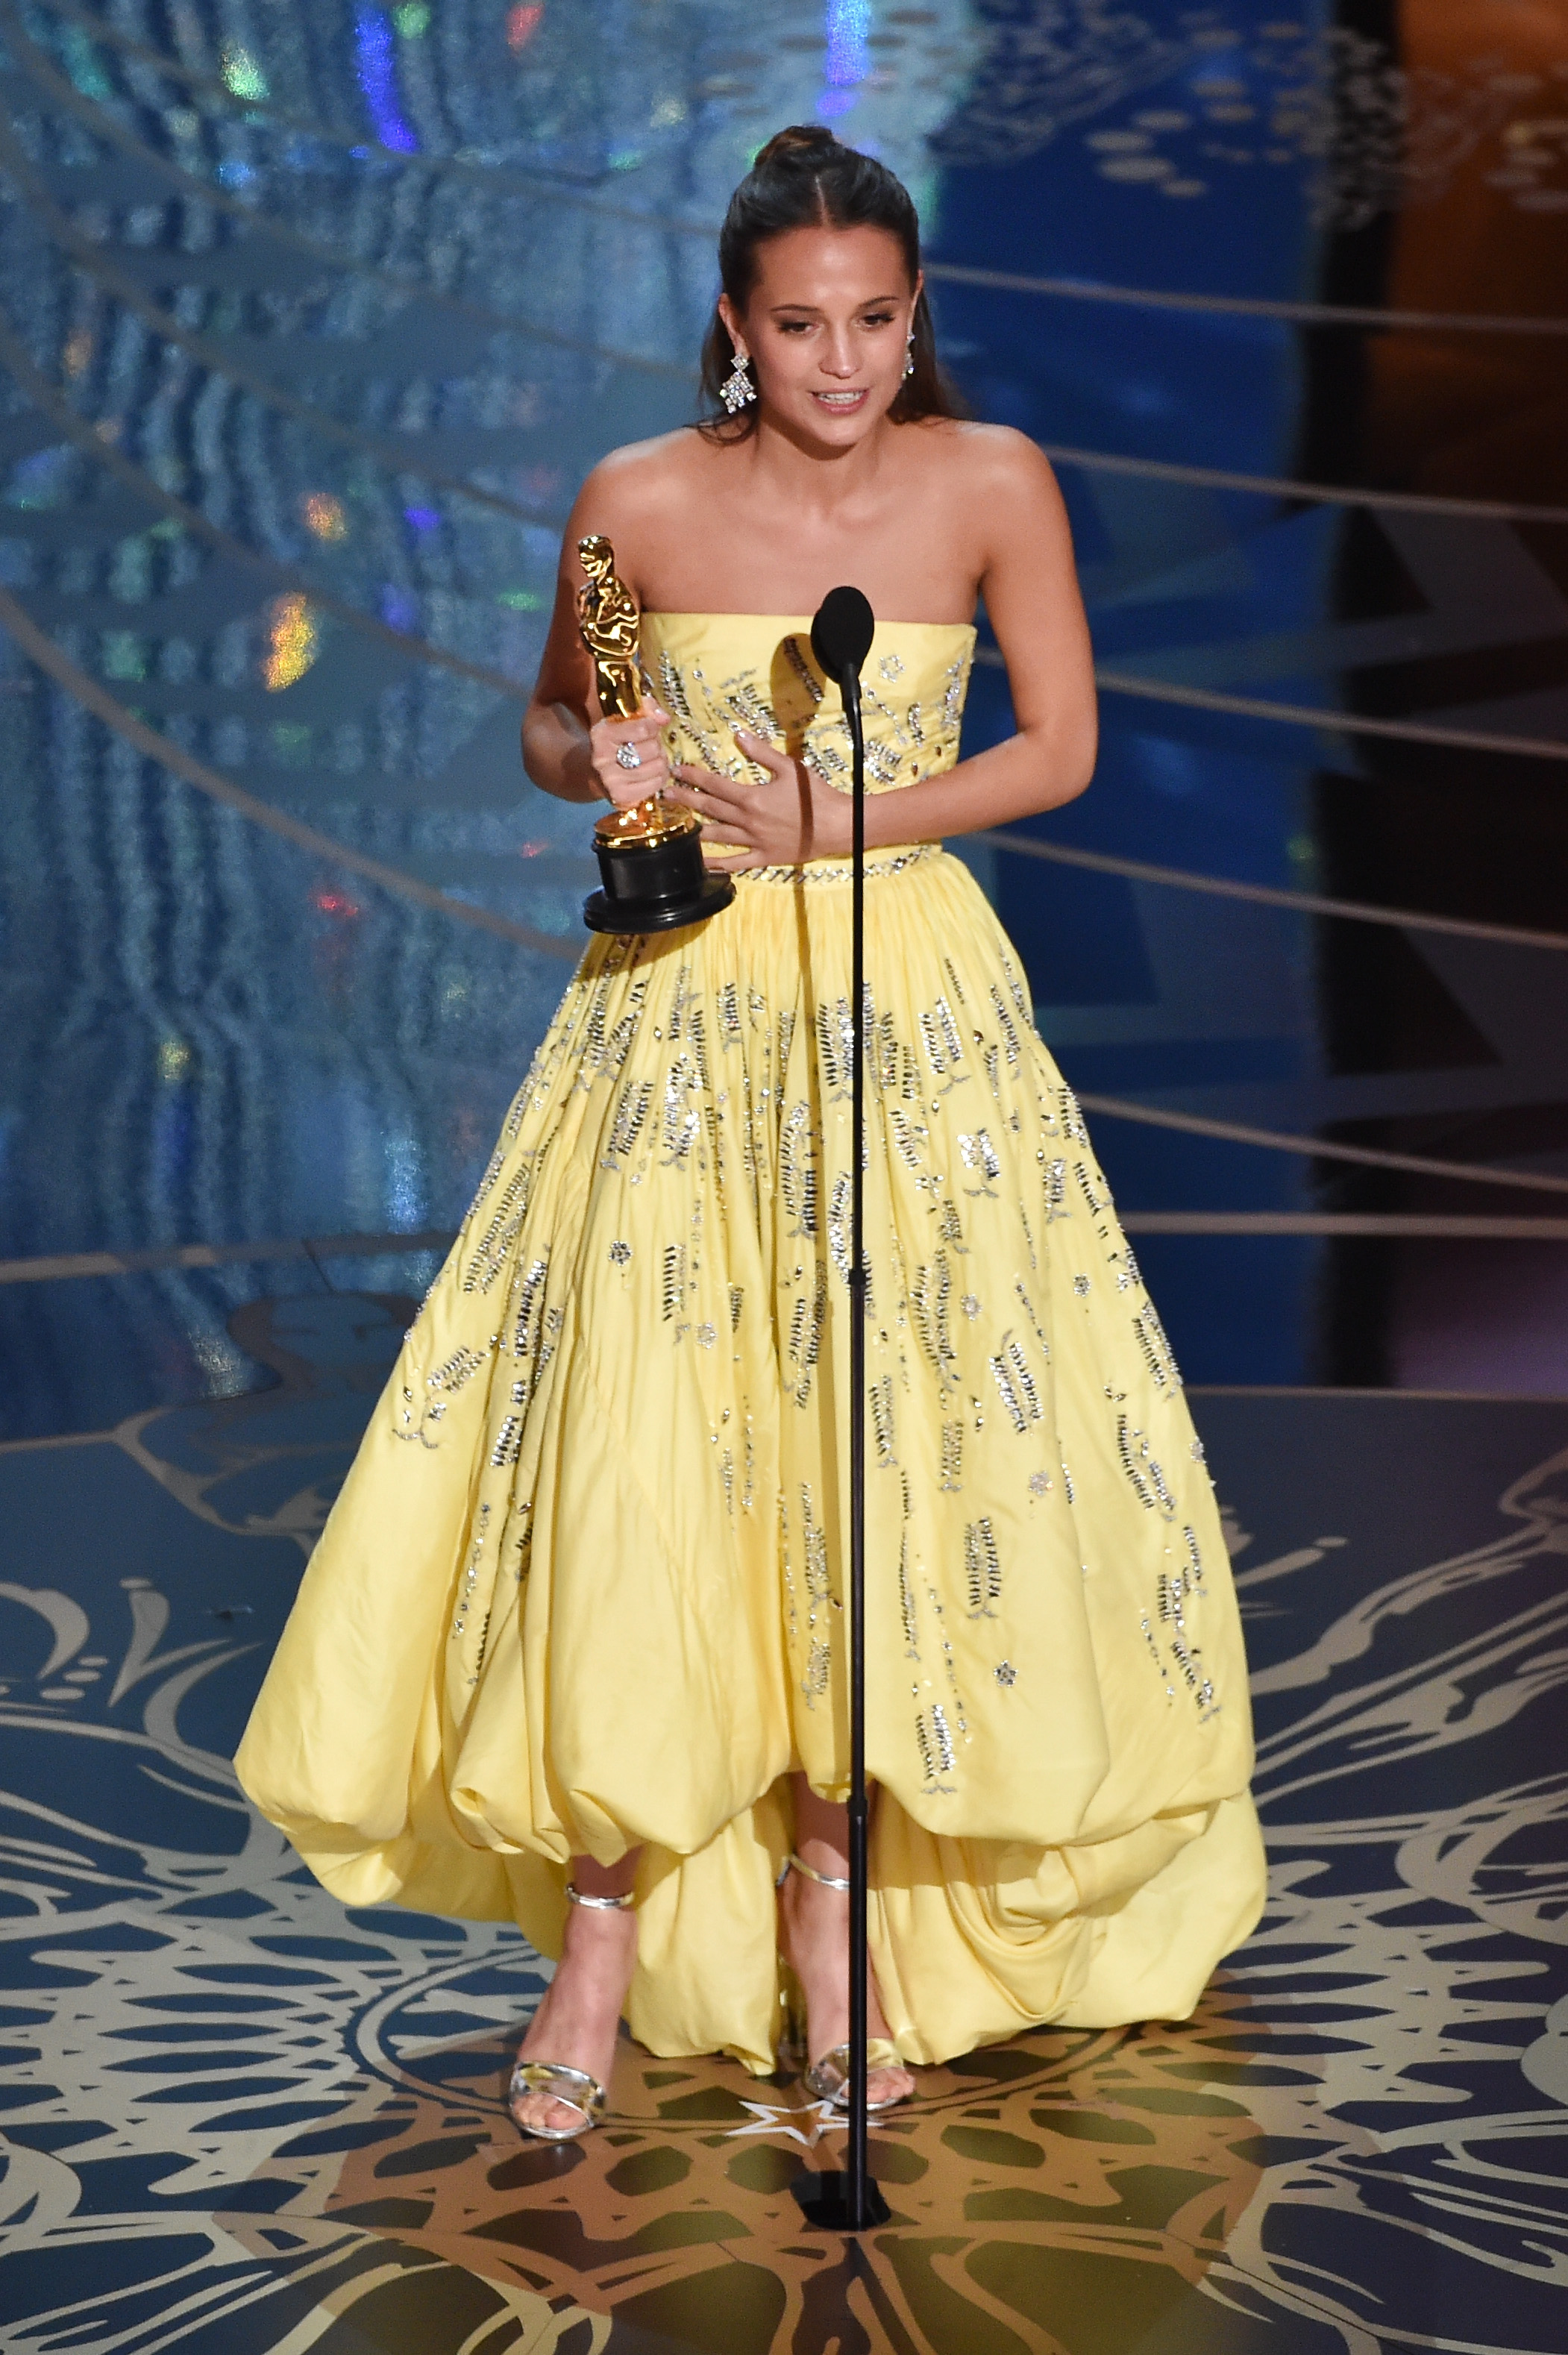 Alicia vikander wins 2016 oscar for best supporting for Oscar awards winning movies